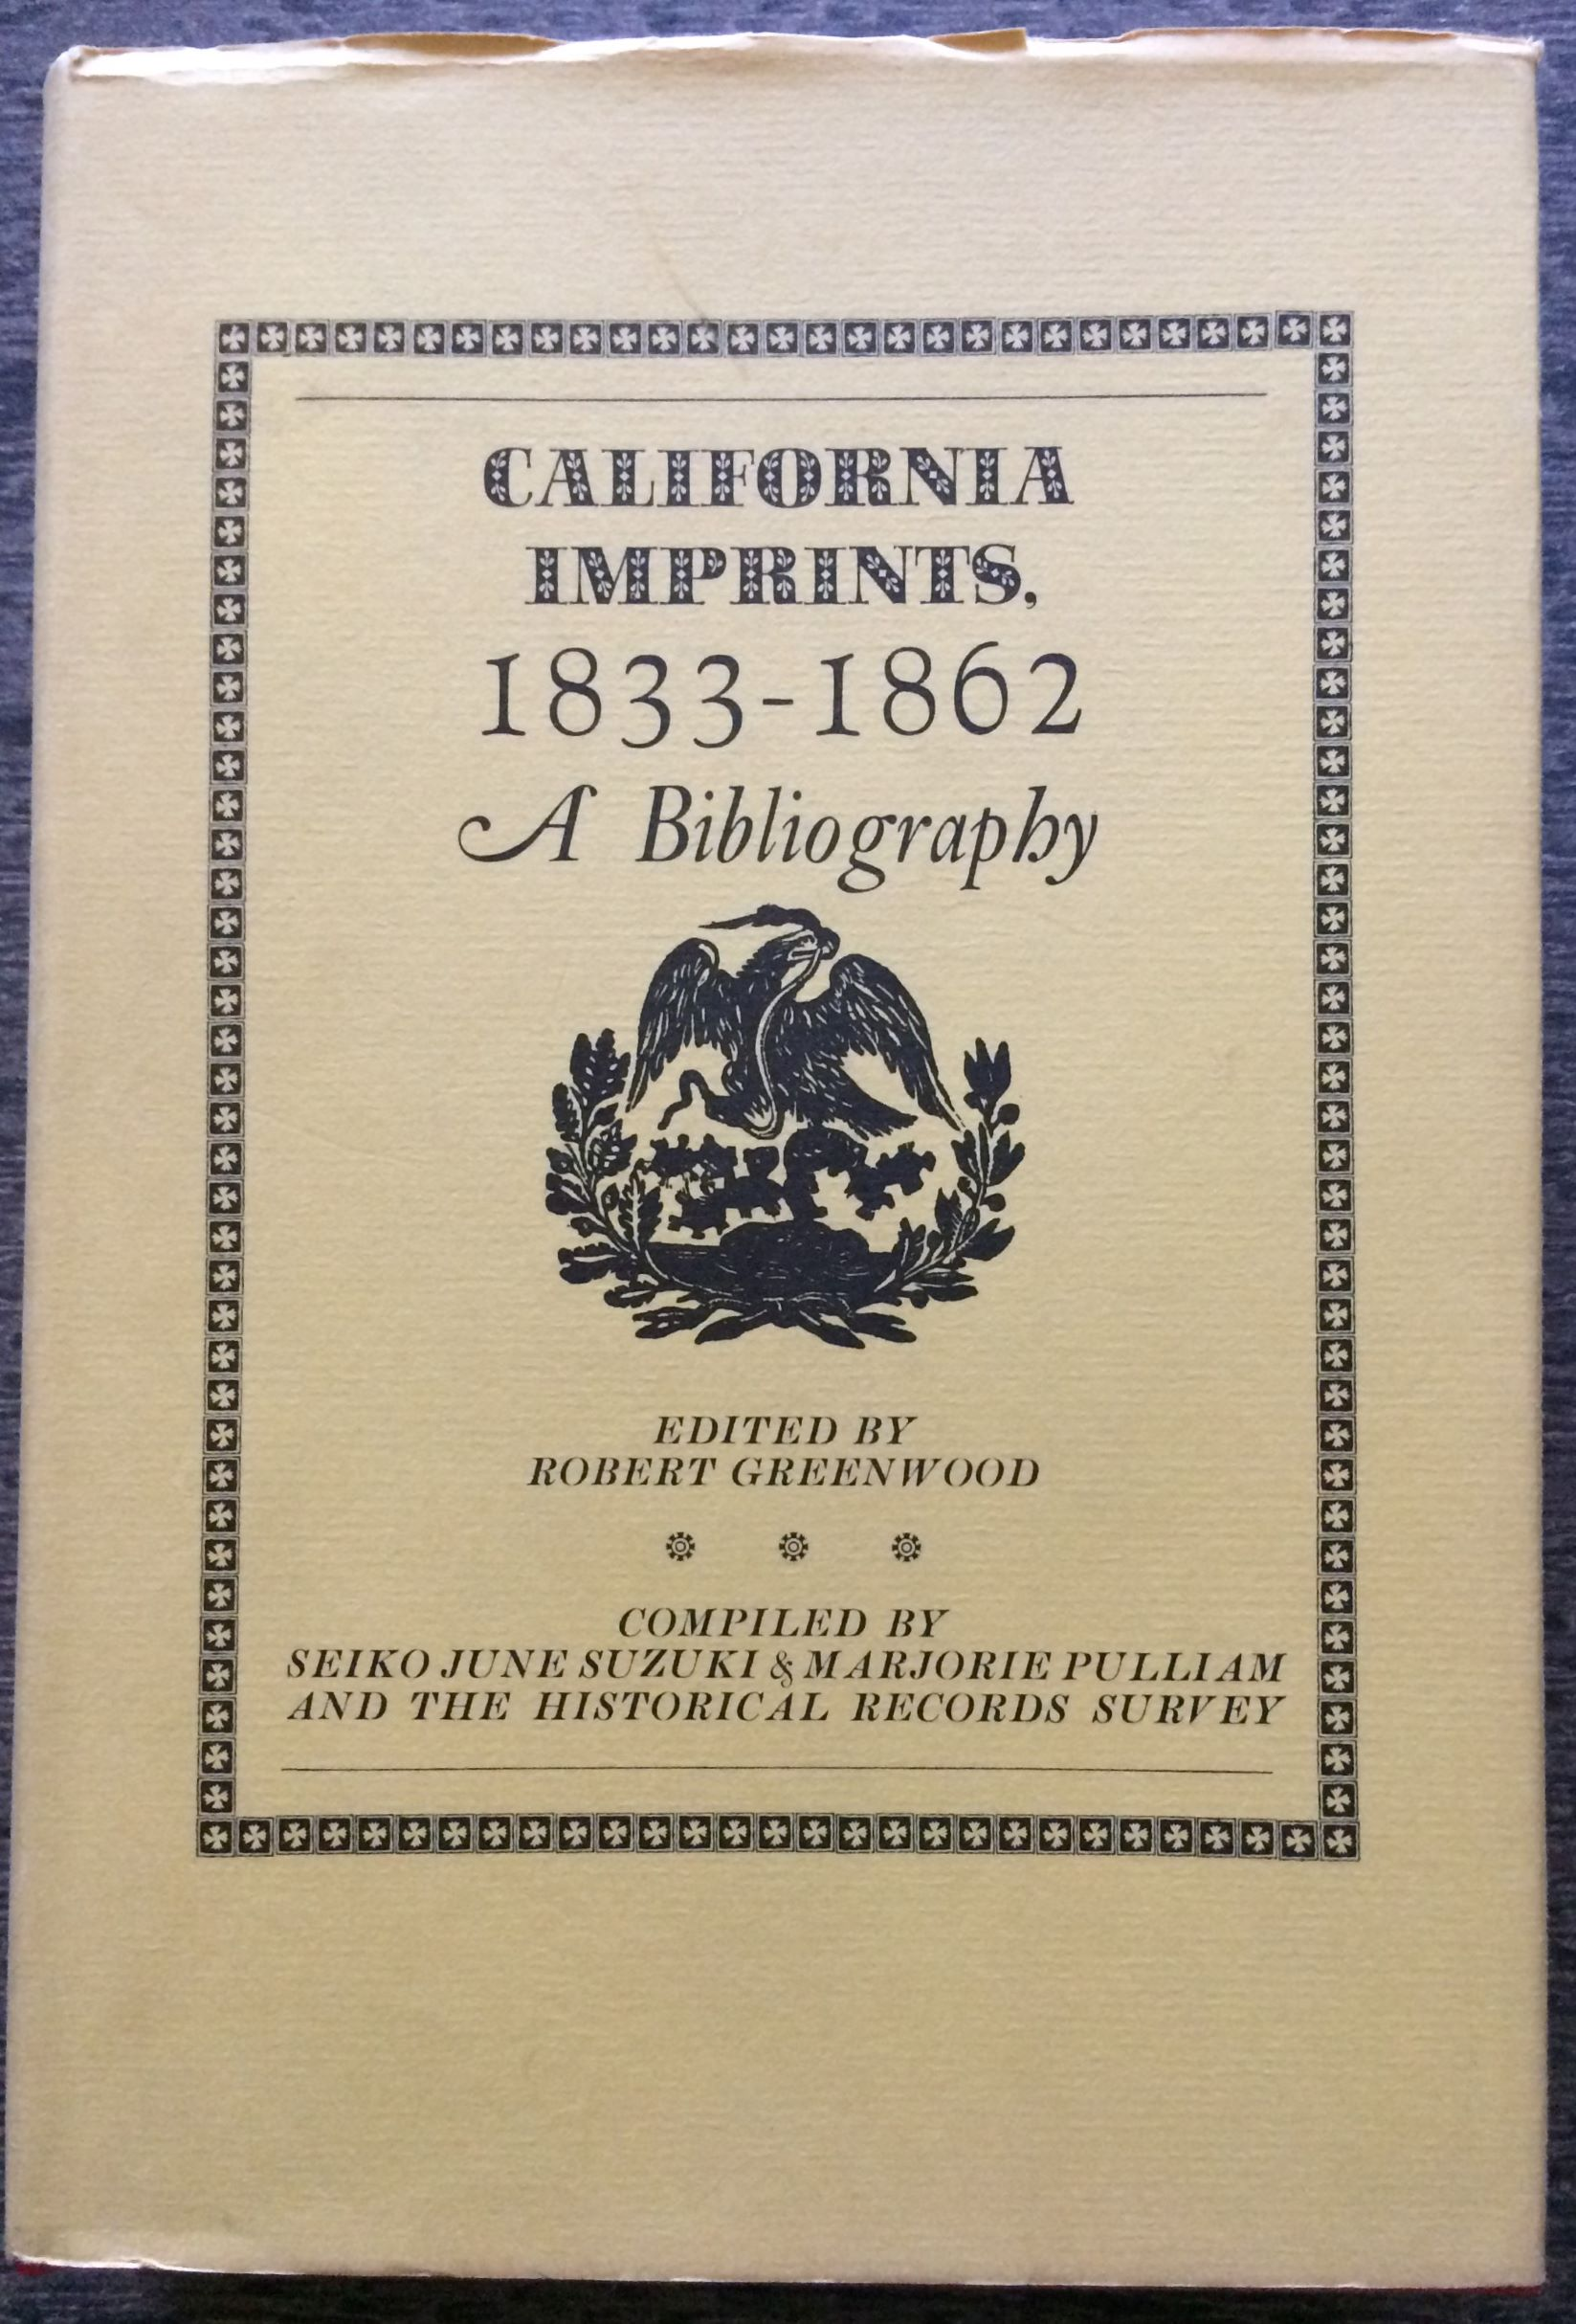 Image for California Imprints, 1833-1862, A Bibliography.  Compiled by Seiko June Suzuki & Marjorie Pulliam, and the Historical Records Survey.